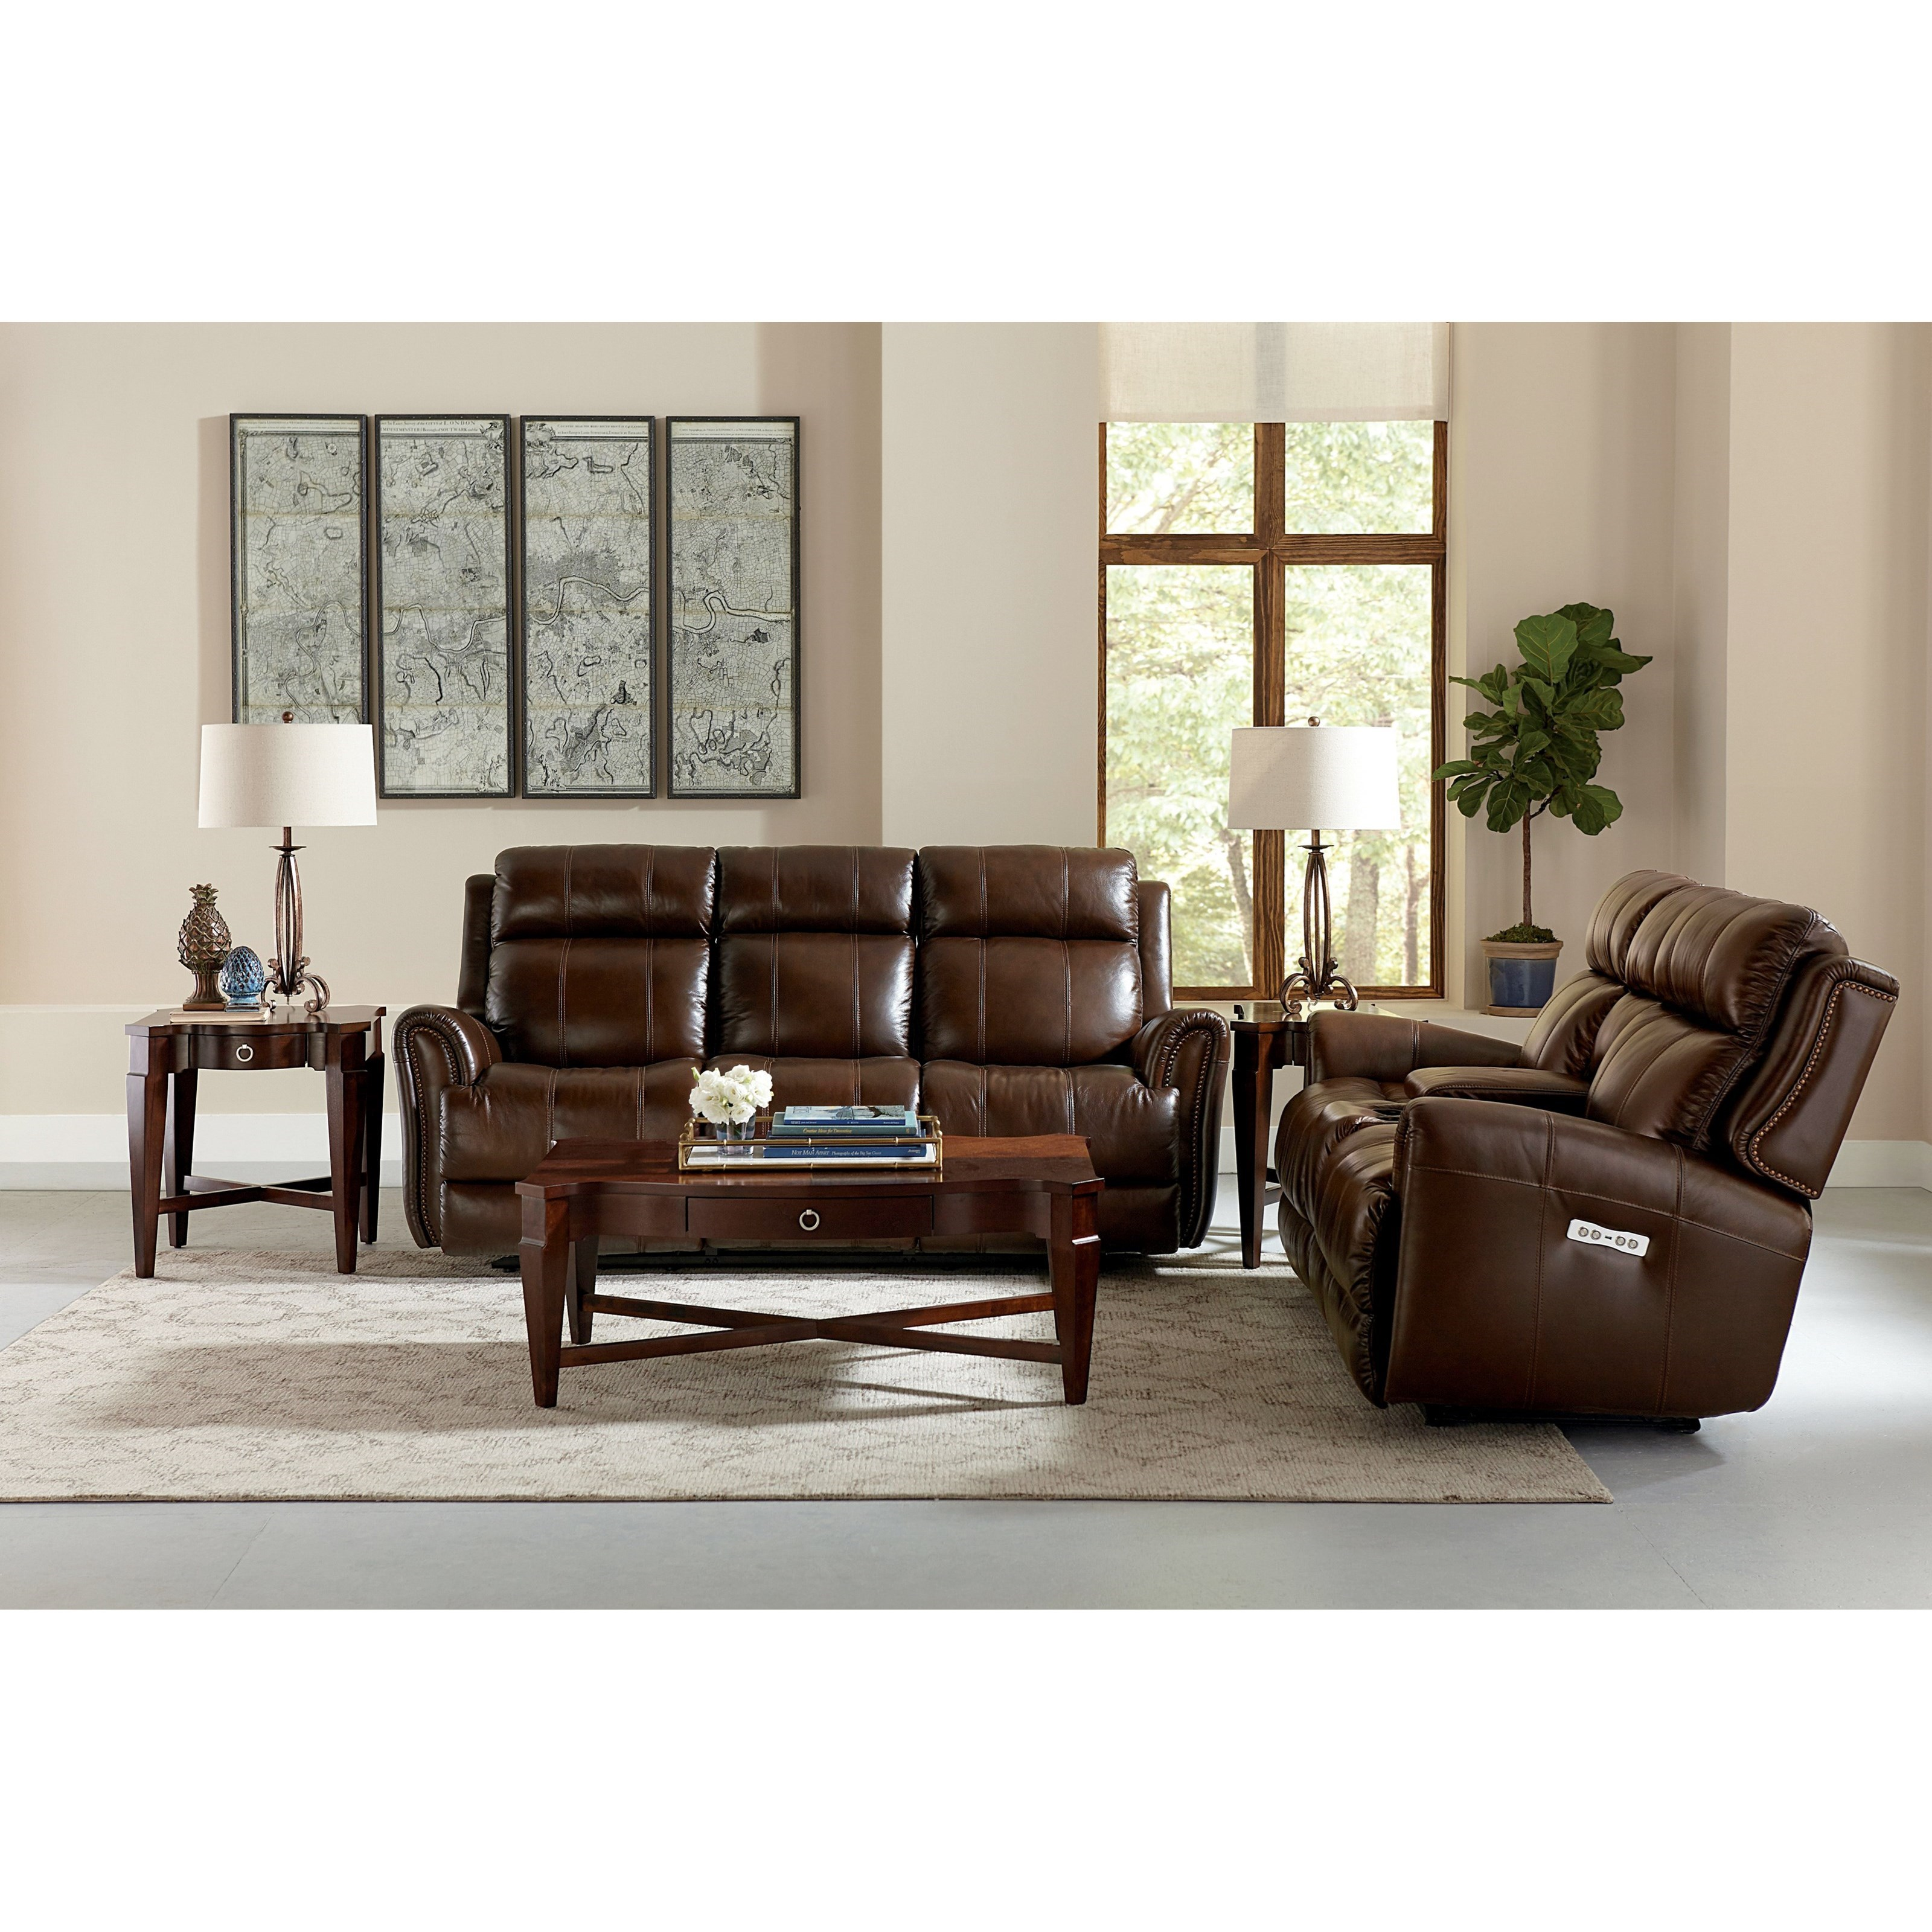 Marquee Reclining Living Room Group by Bassett at Virginia Furniture Market